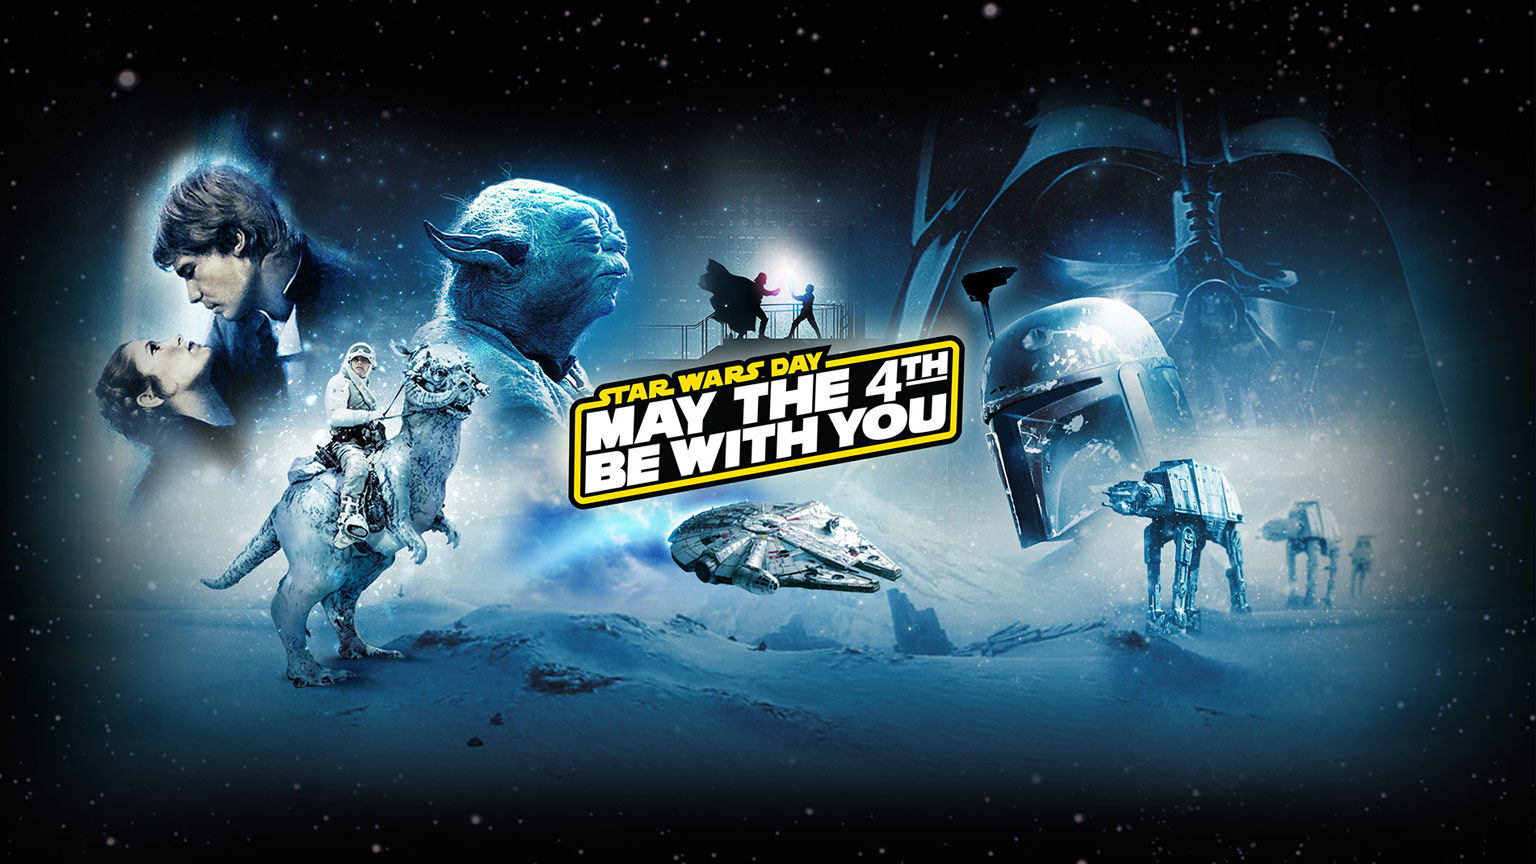 Star Wars Day May The 4th Be With You Starwars Com